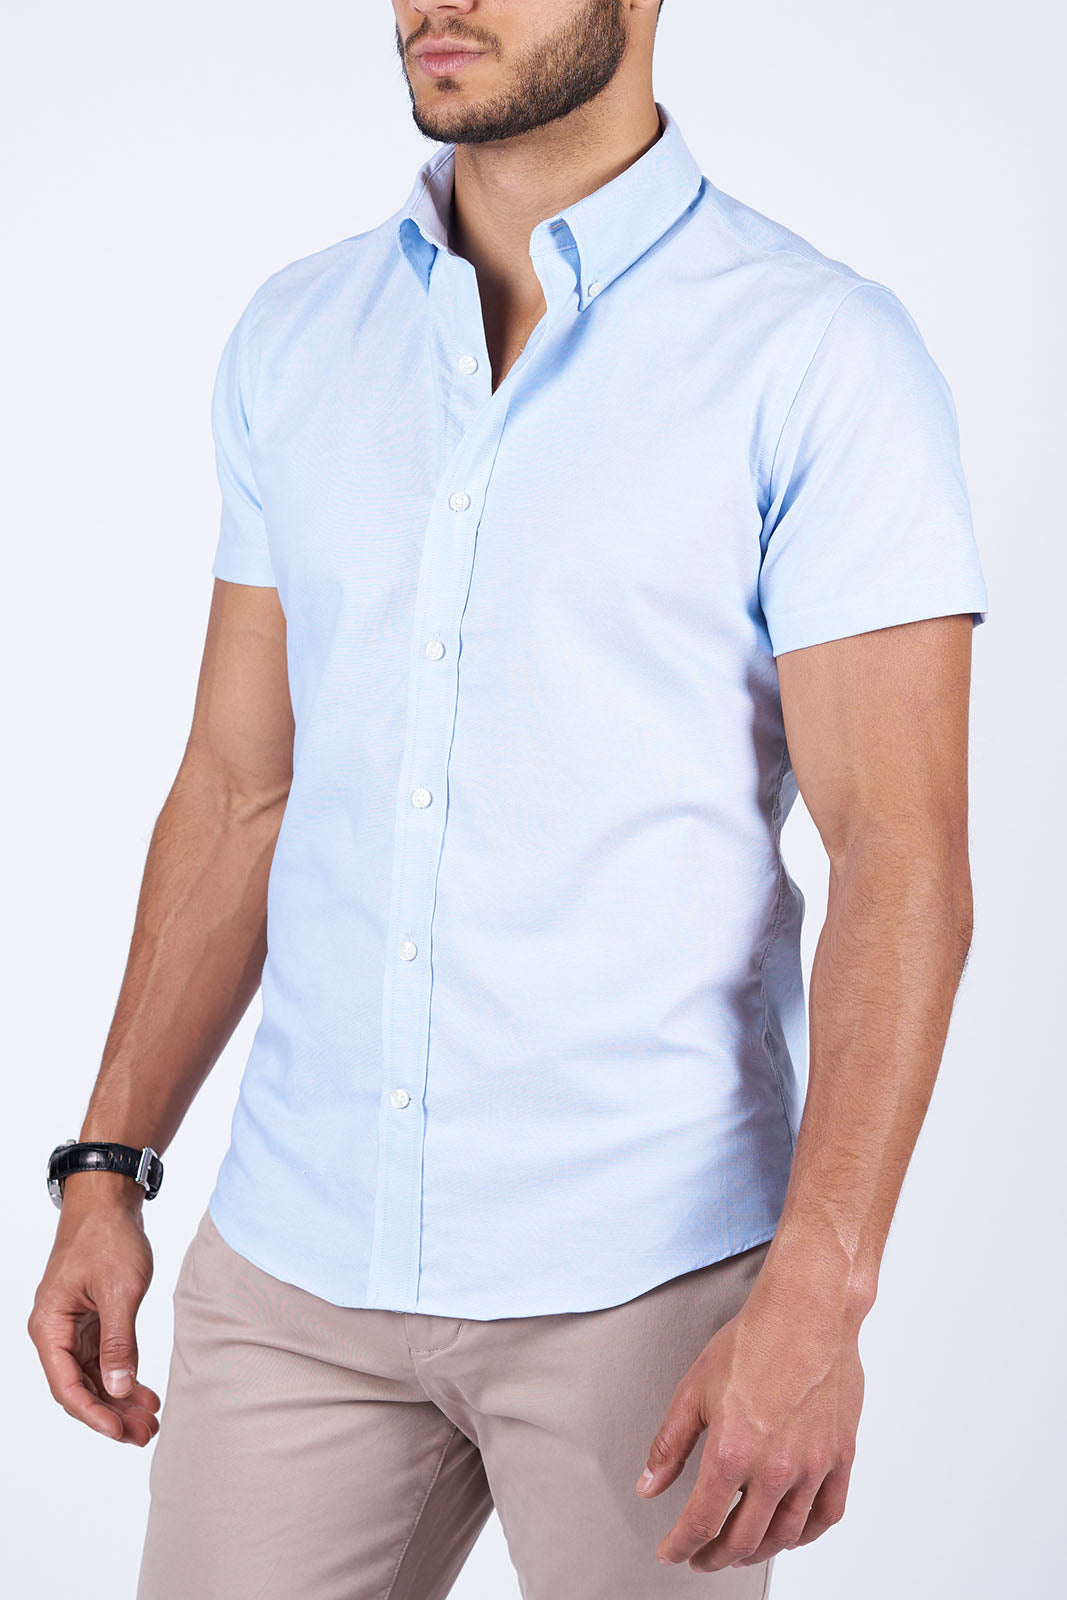 Light Blue Oxford: Semi-Spread Collar, Short Sleeve